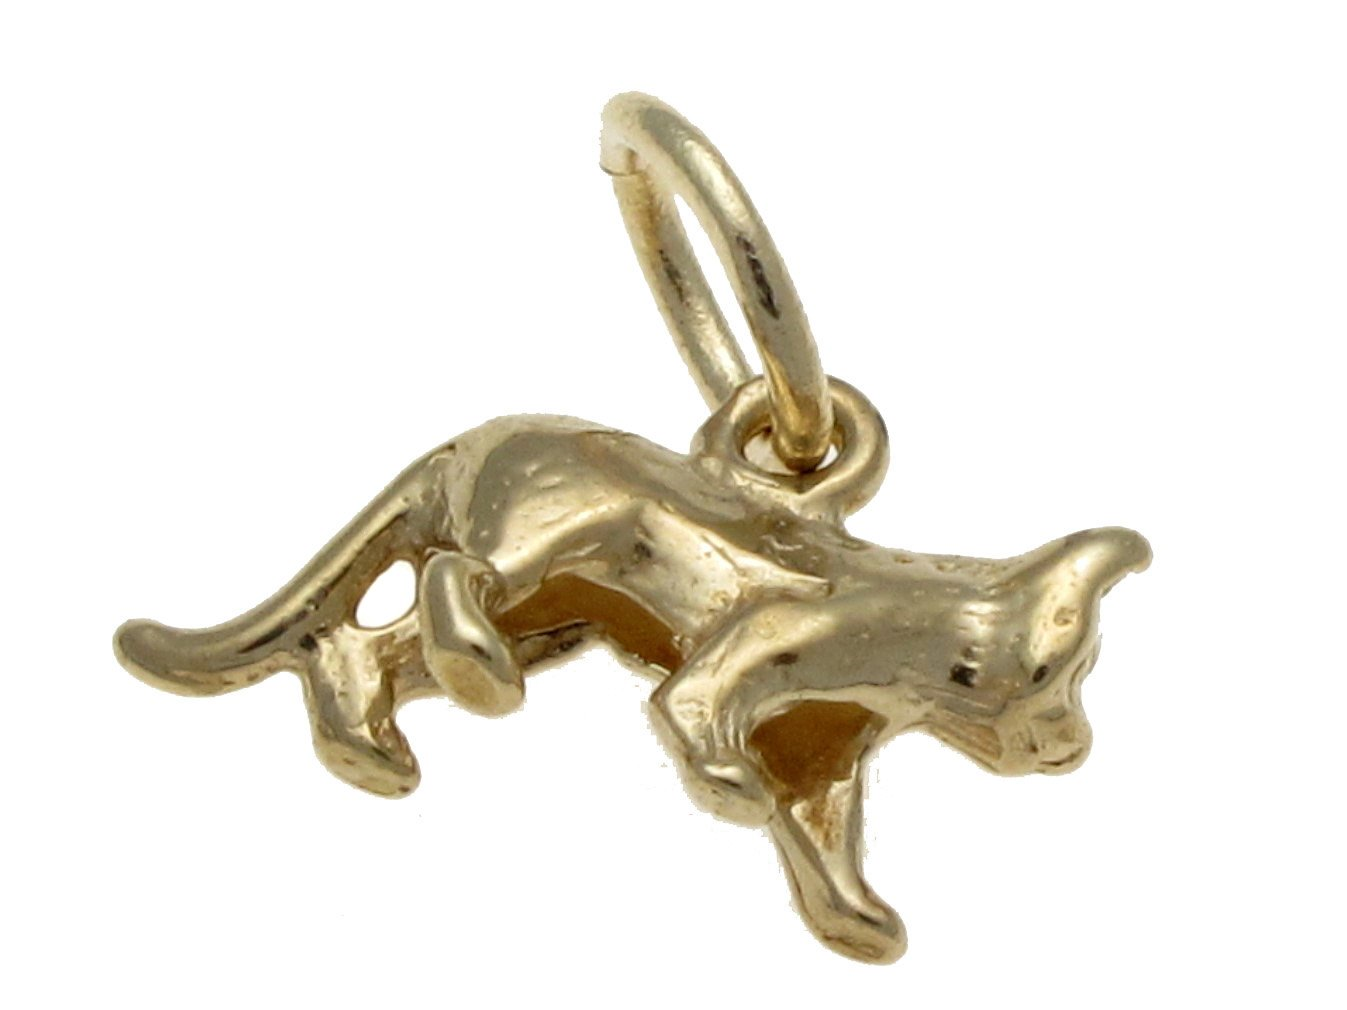 Handmade by Welded Bliss 9ct Solid Gold Small Walking Cat Charm